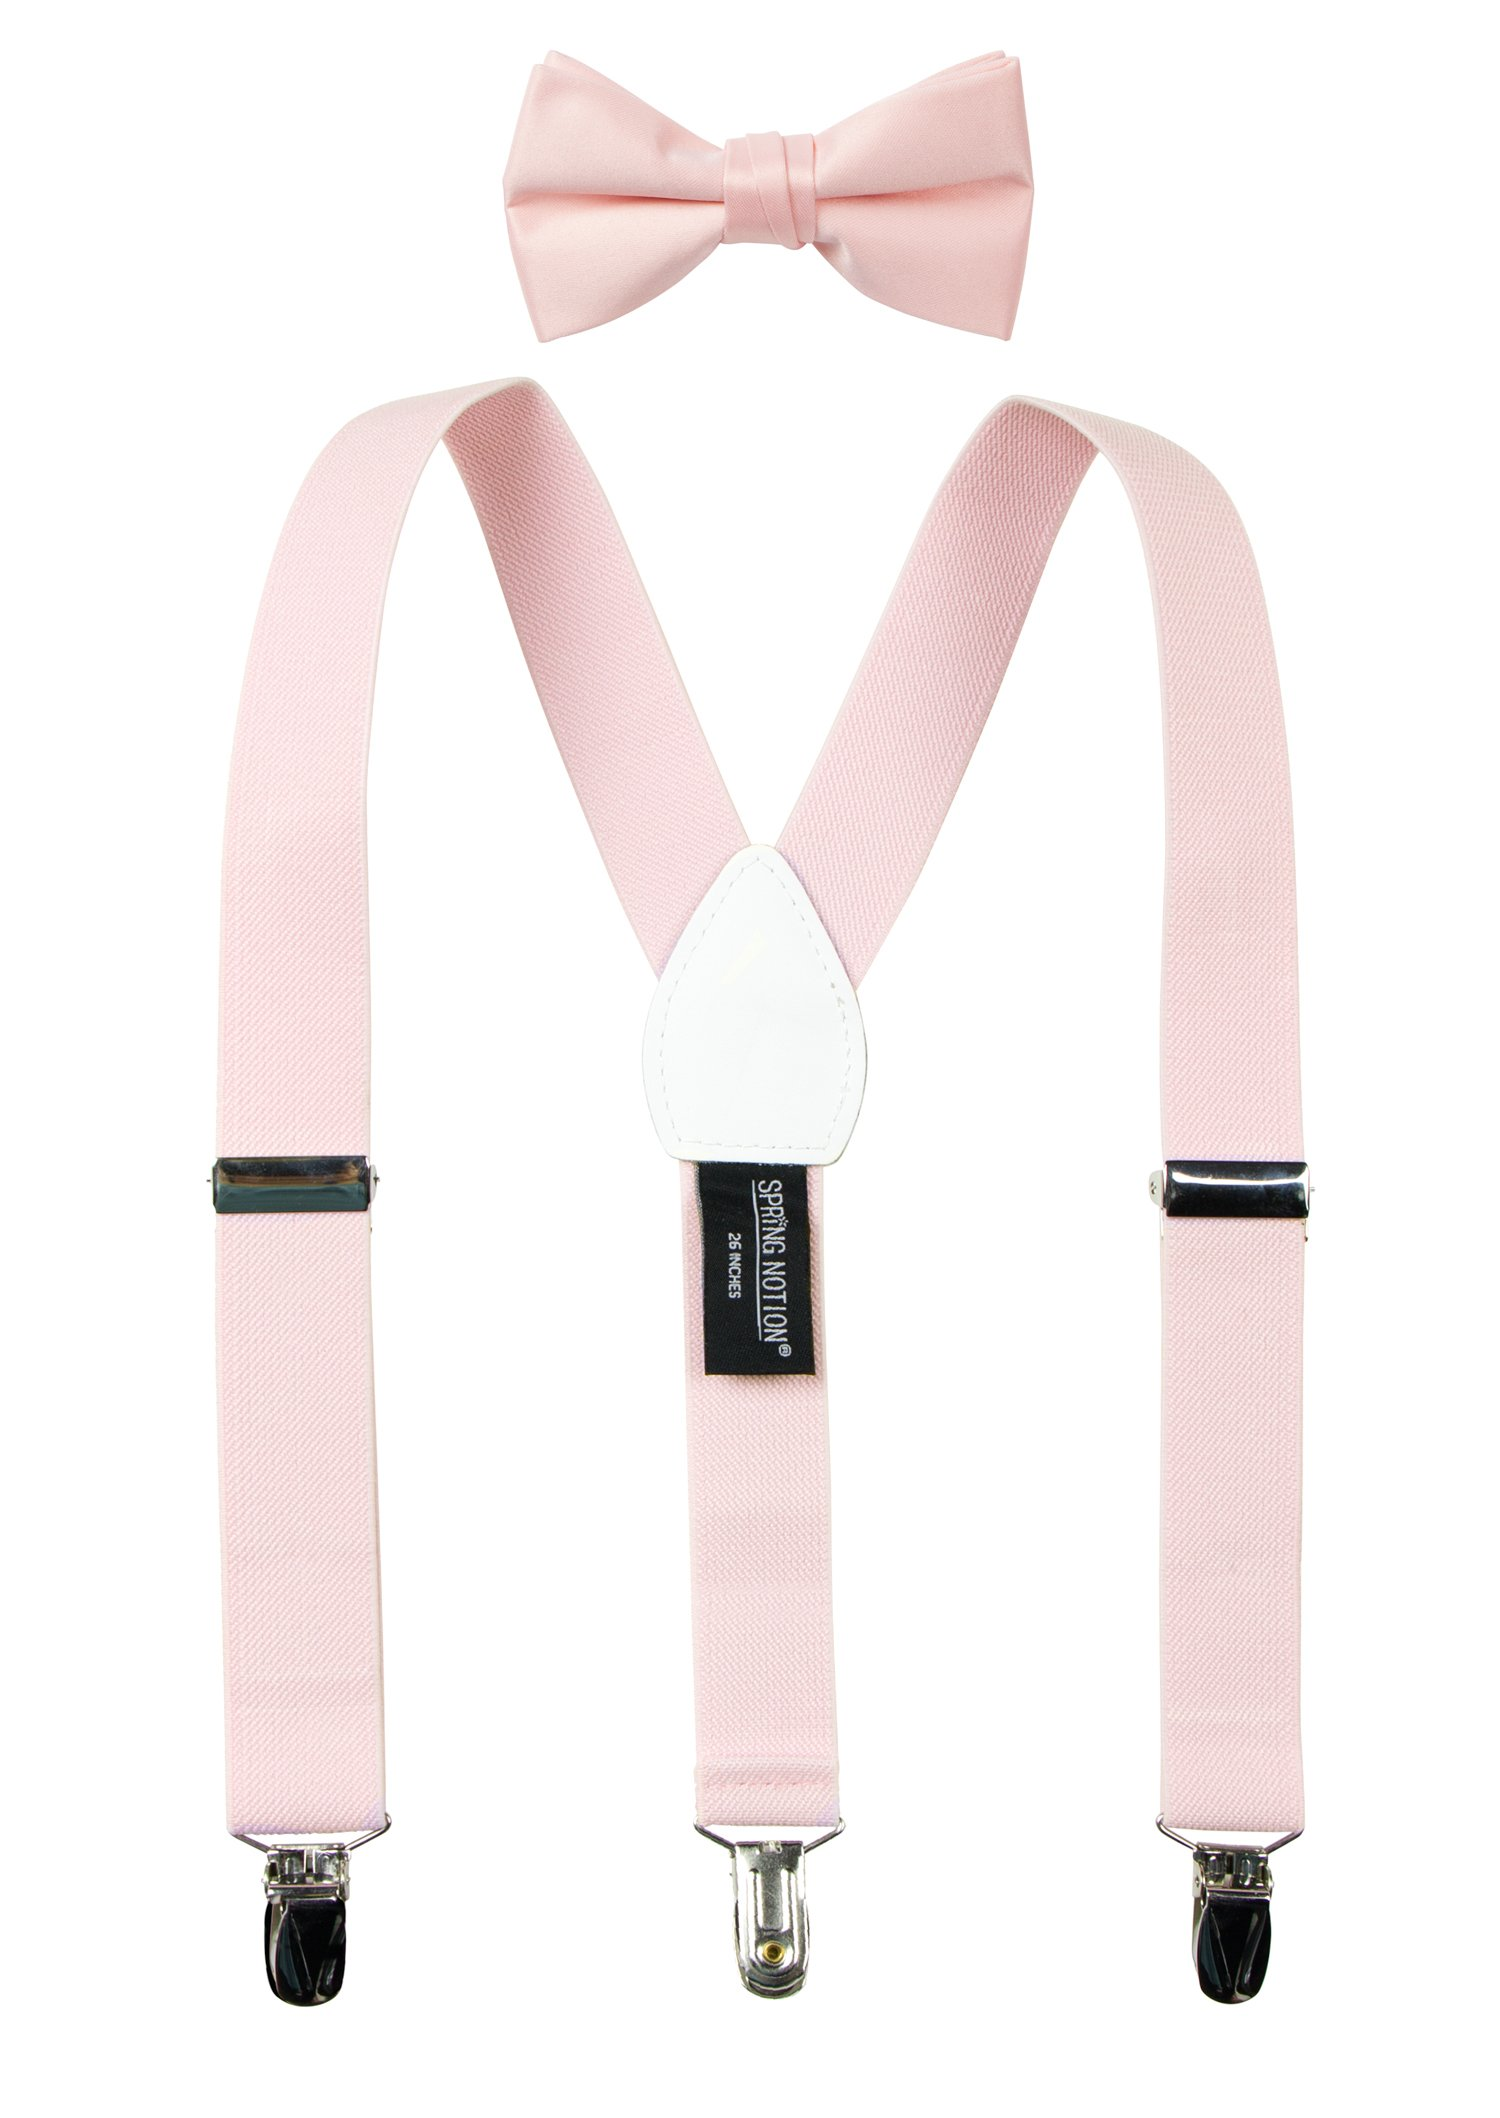 Spring Notion Boys' Suspenders and Solid Color Bowtie Set Blush Pink Medium